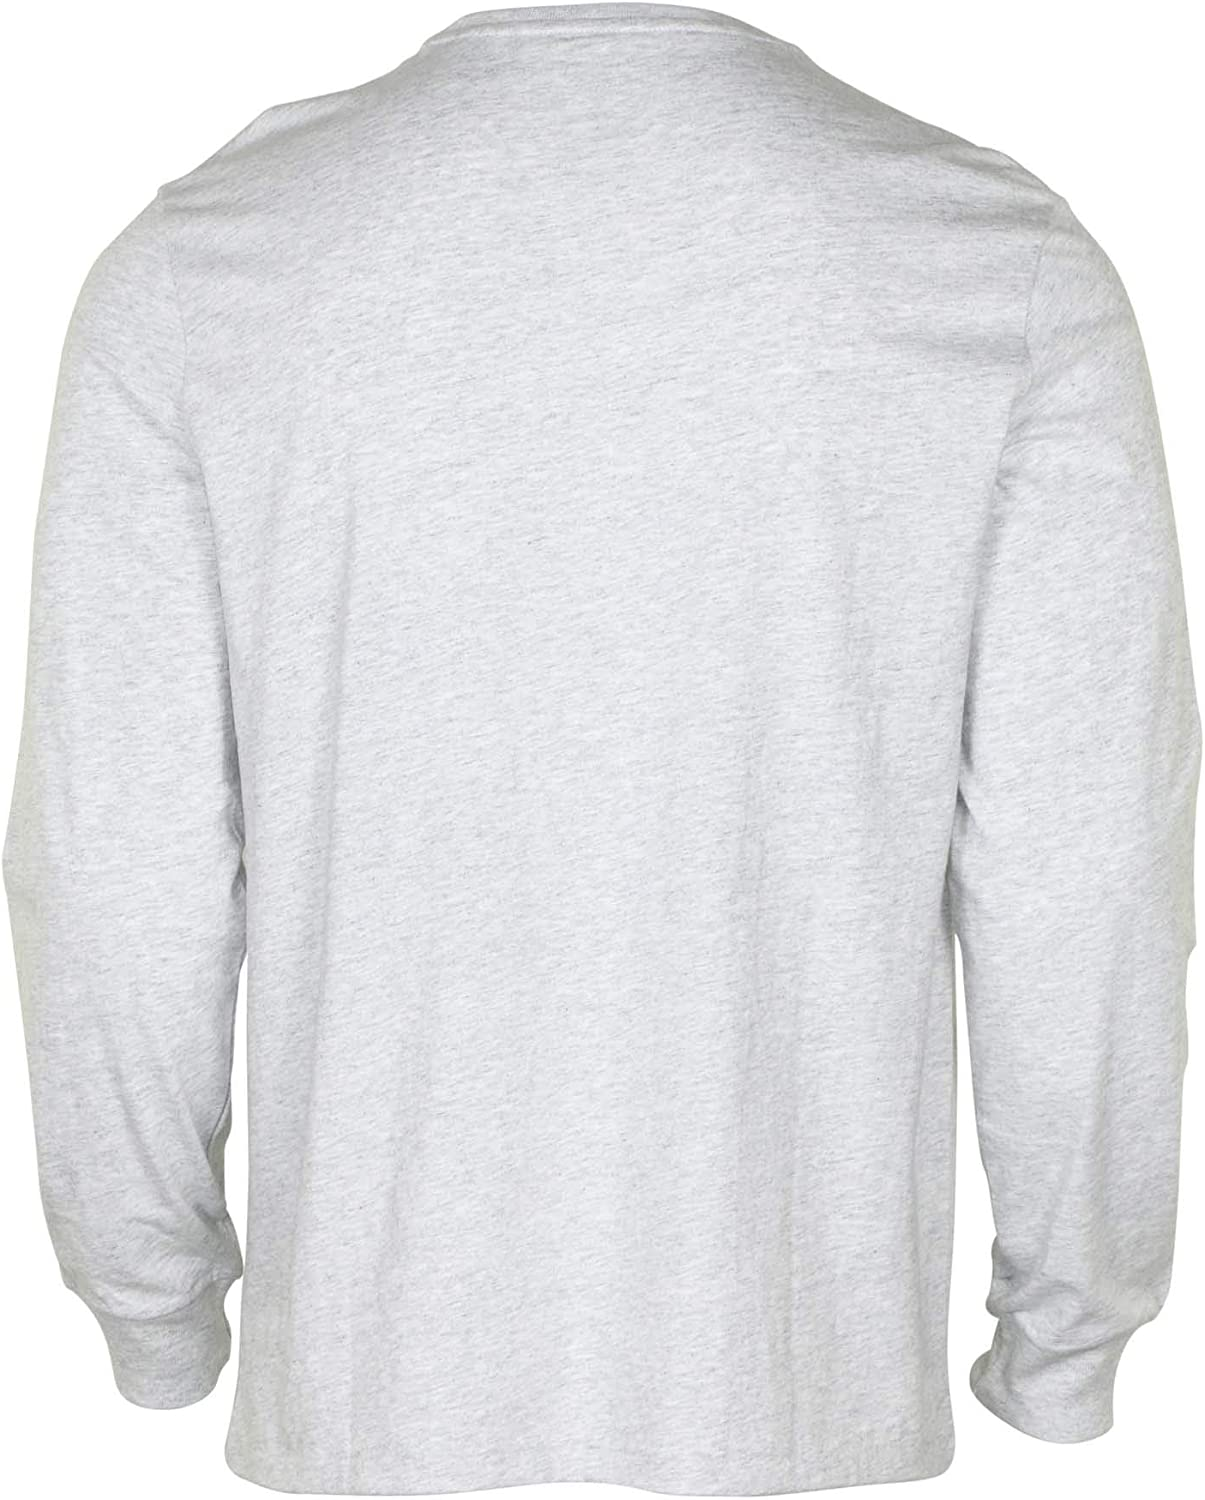 Polo Ralph Lauren Mens Crew Neck Long Sleeve Tee